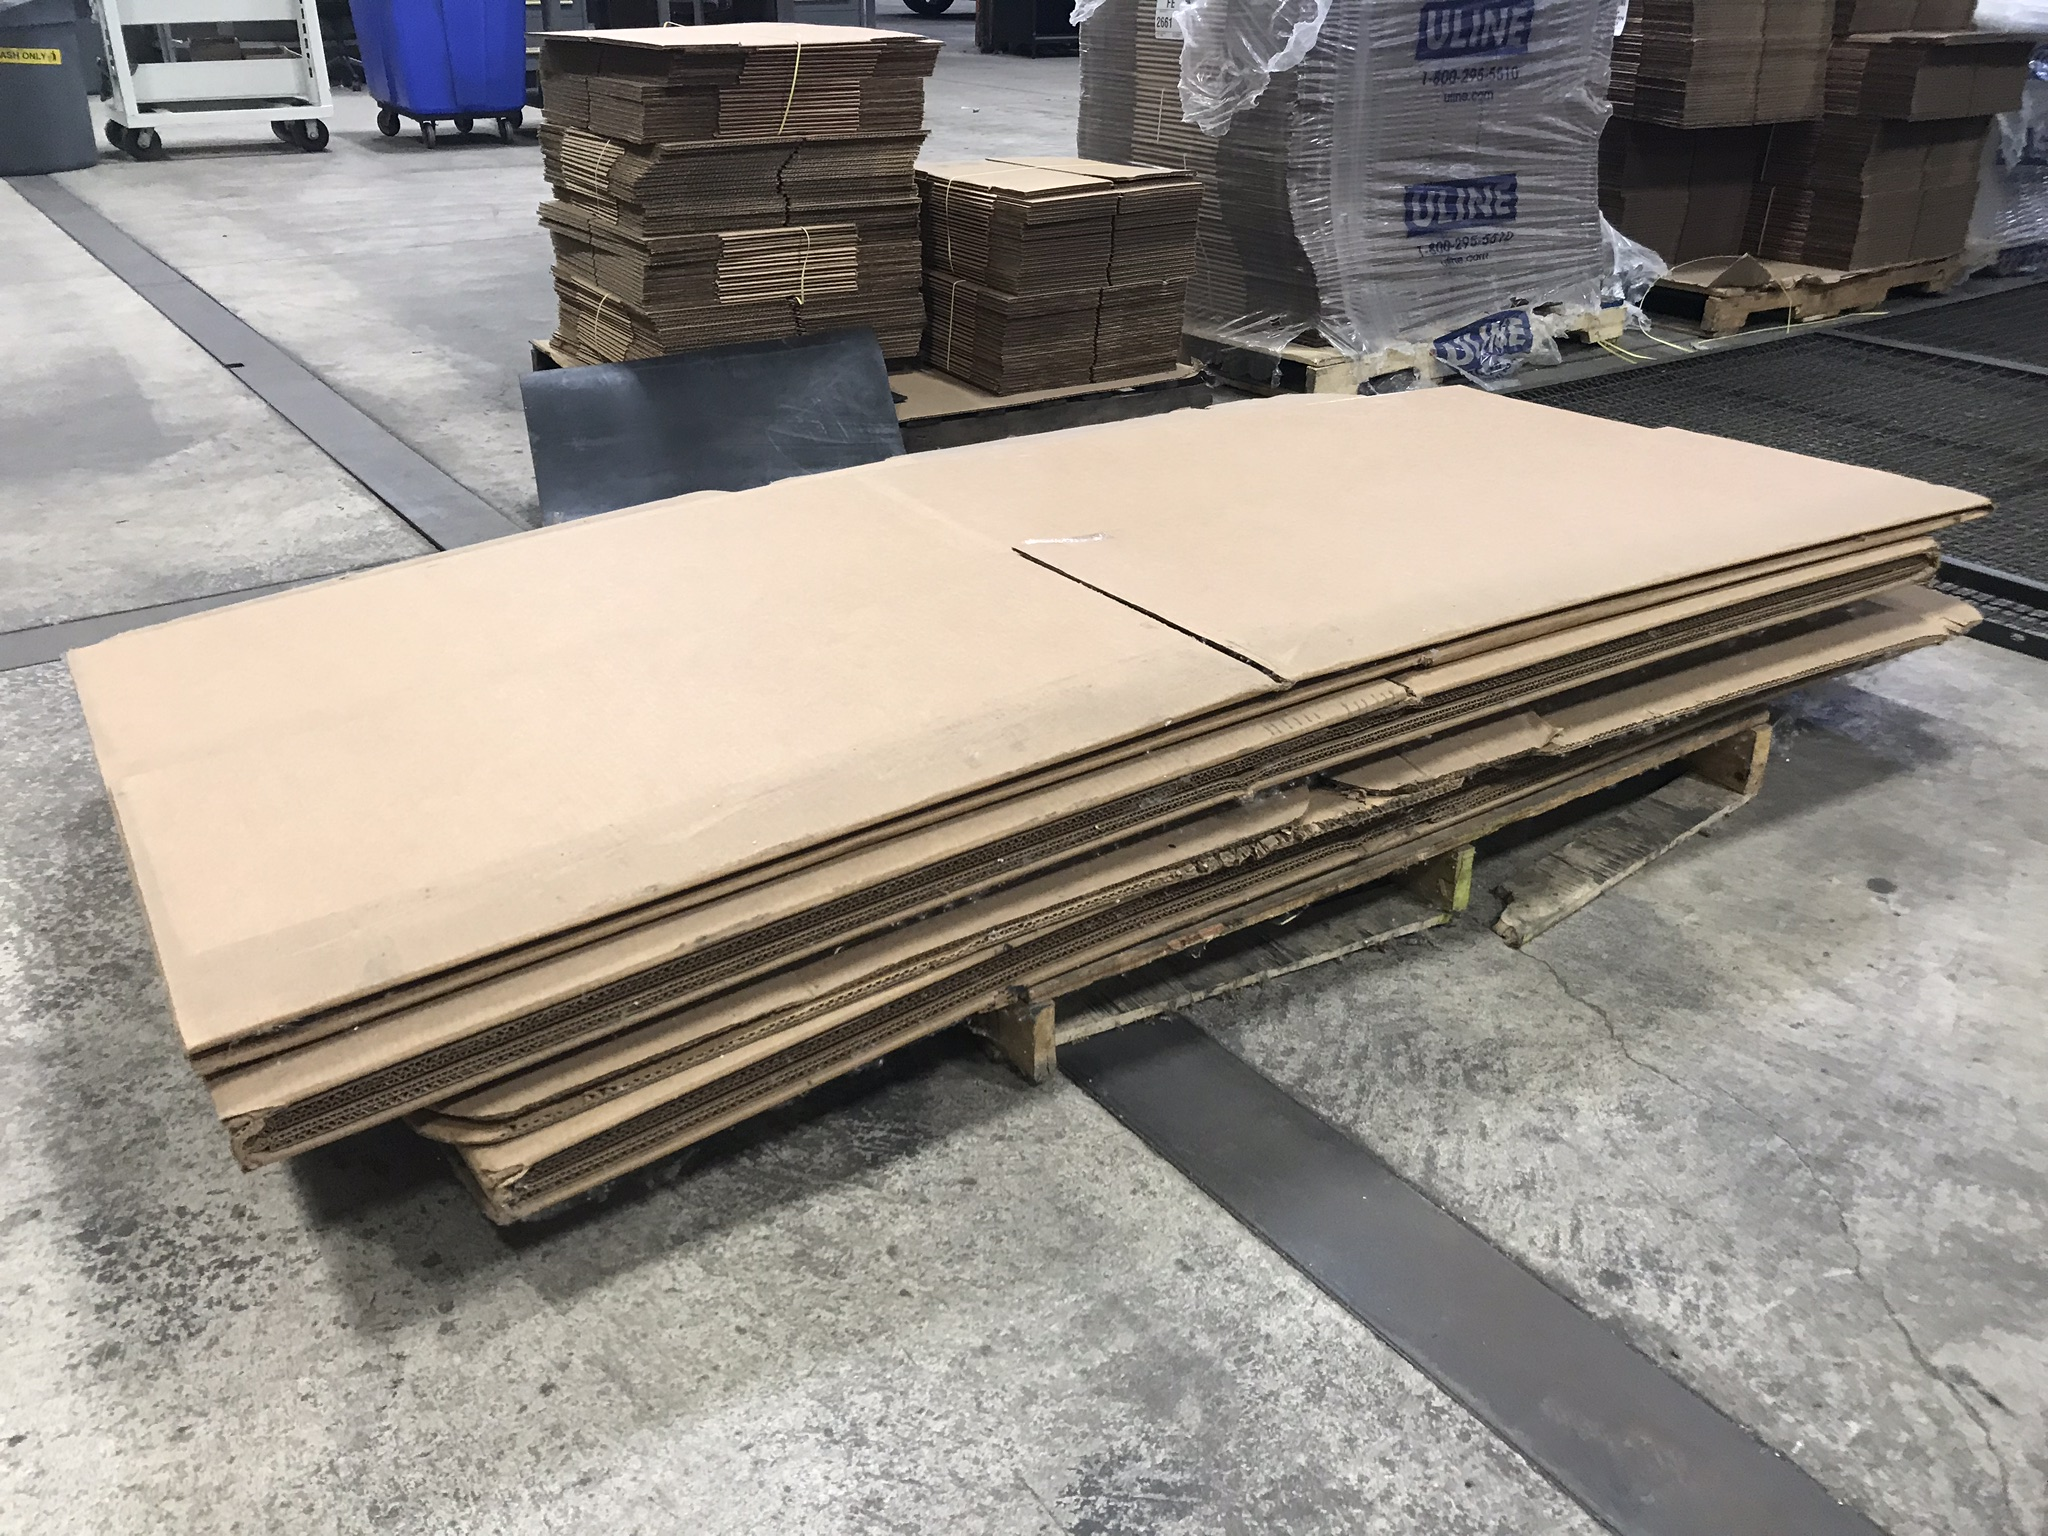 "Lot-Shipping Boxes, 9"" x 9"" x 9"", 24"" x 18"" x 12"", 12"" x 12"" x 12"", and Extra Long Boxes - Image 2 of 7"